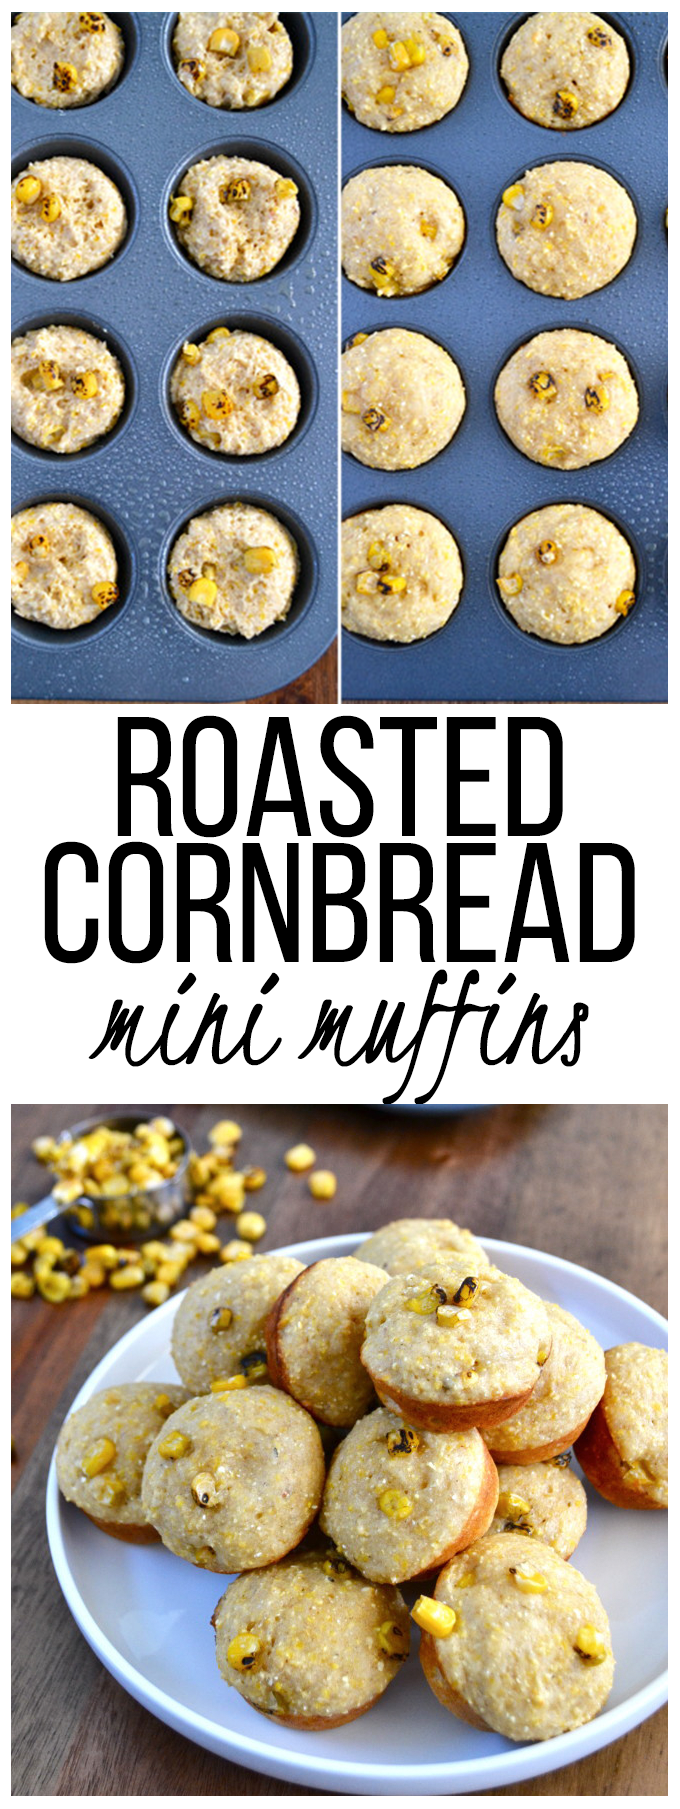 Roasted Cornbread Mini Muffins - real food ingredients and the perfect bite to go with Chili!